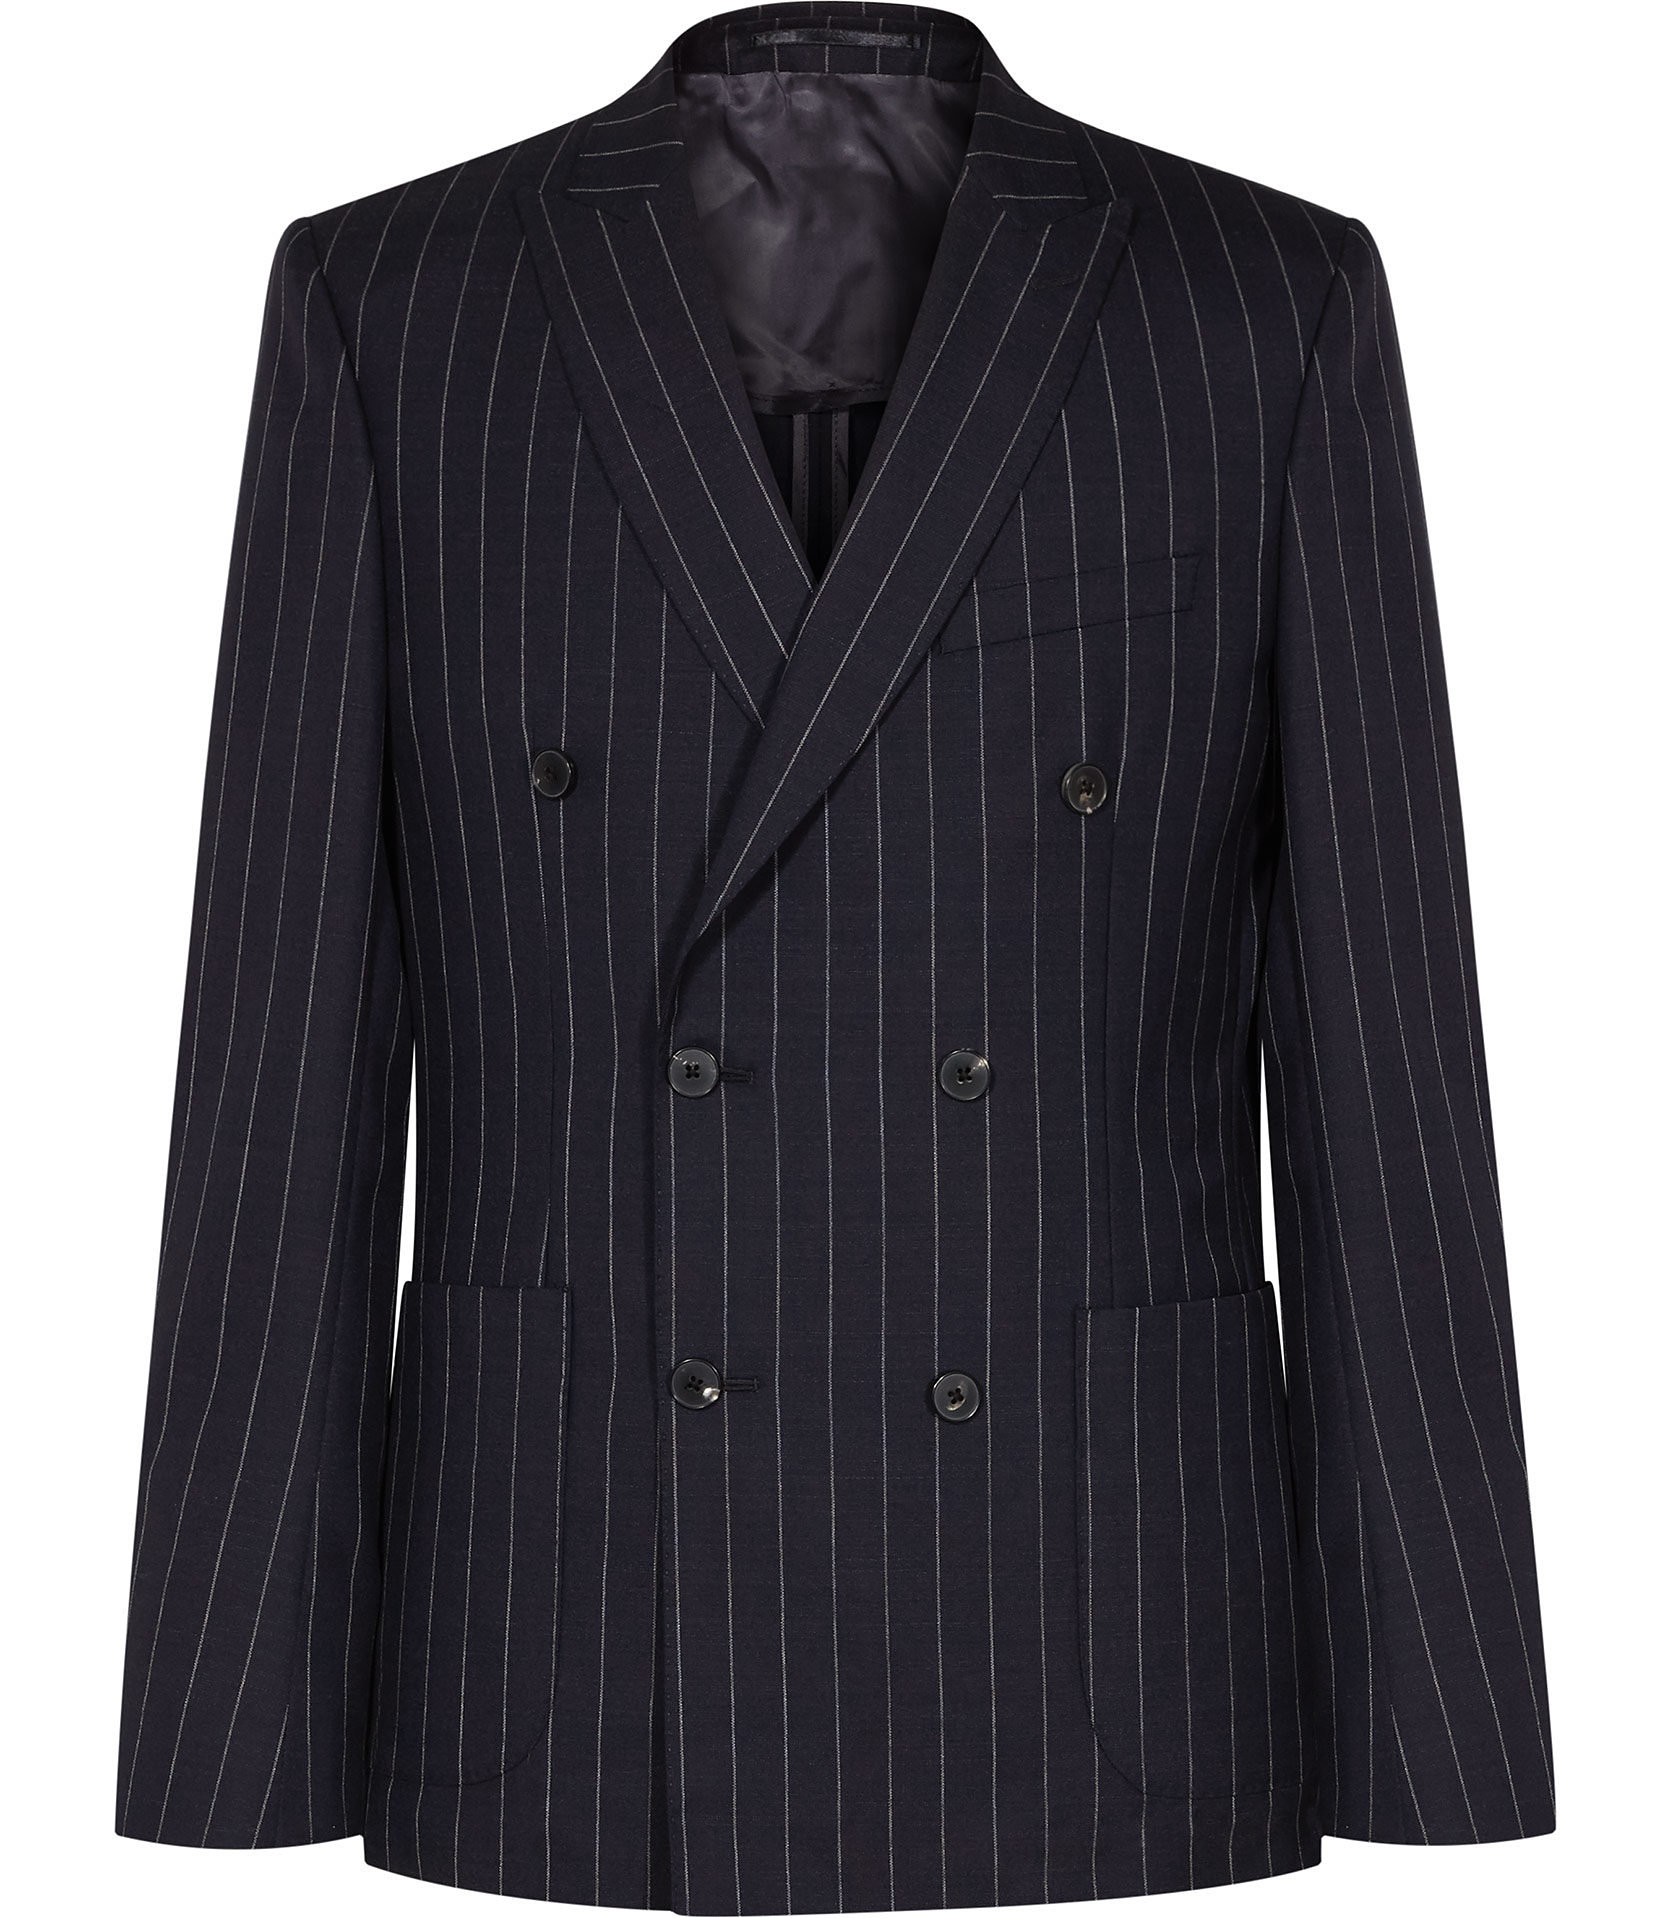 Reiss Navy Pinstripe Suit